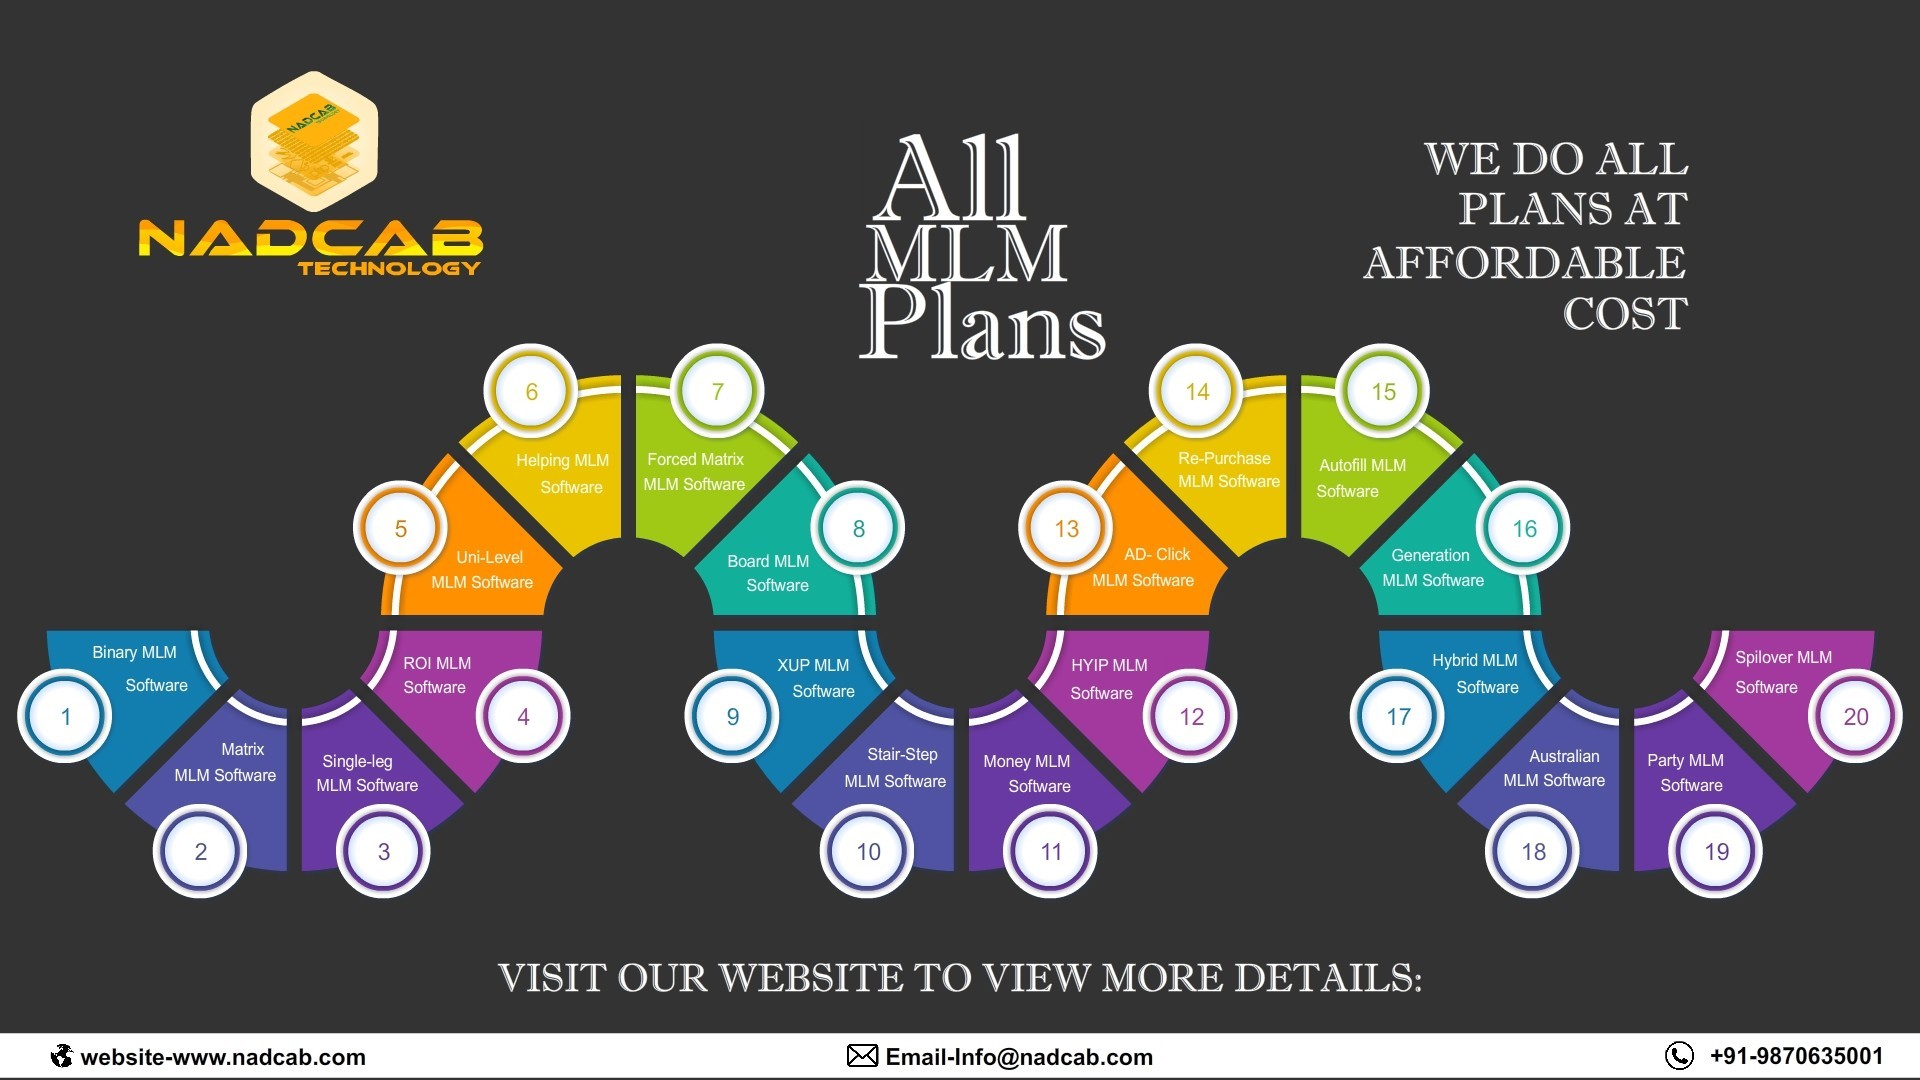 All MLM Plans